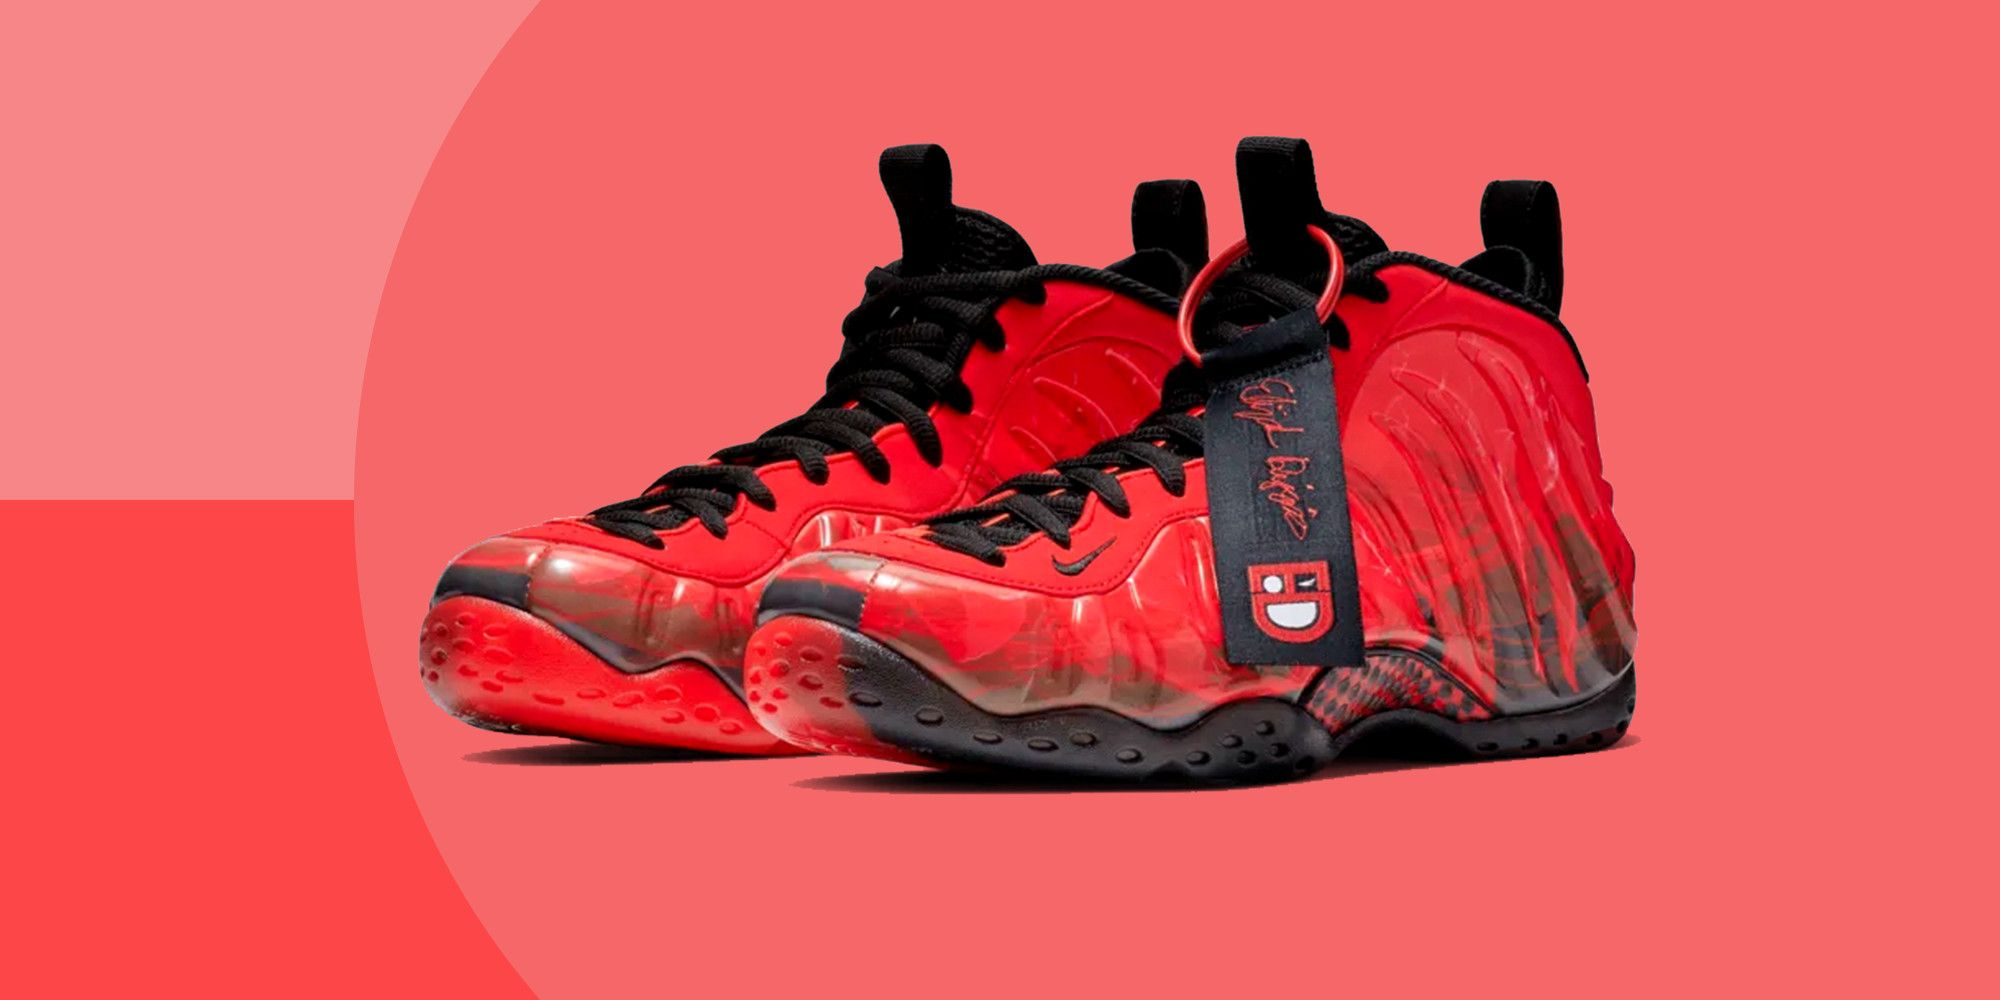 60a870f5ed59 This Week s Biggest Sneaker Releases - Sneaker Releases 2019